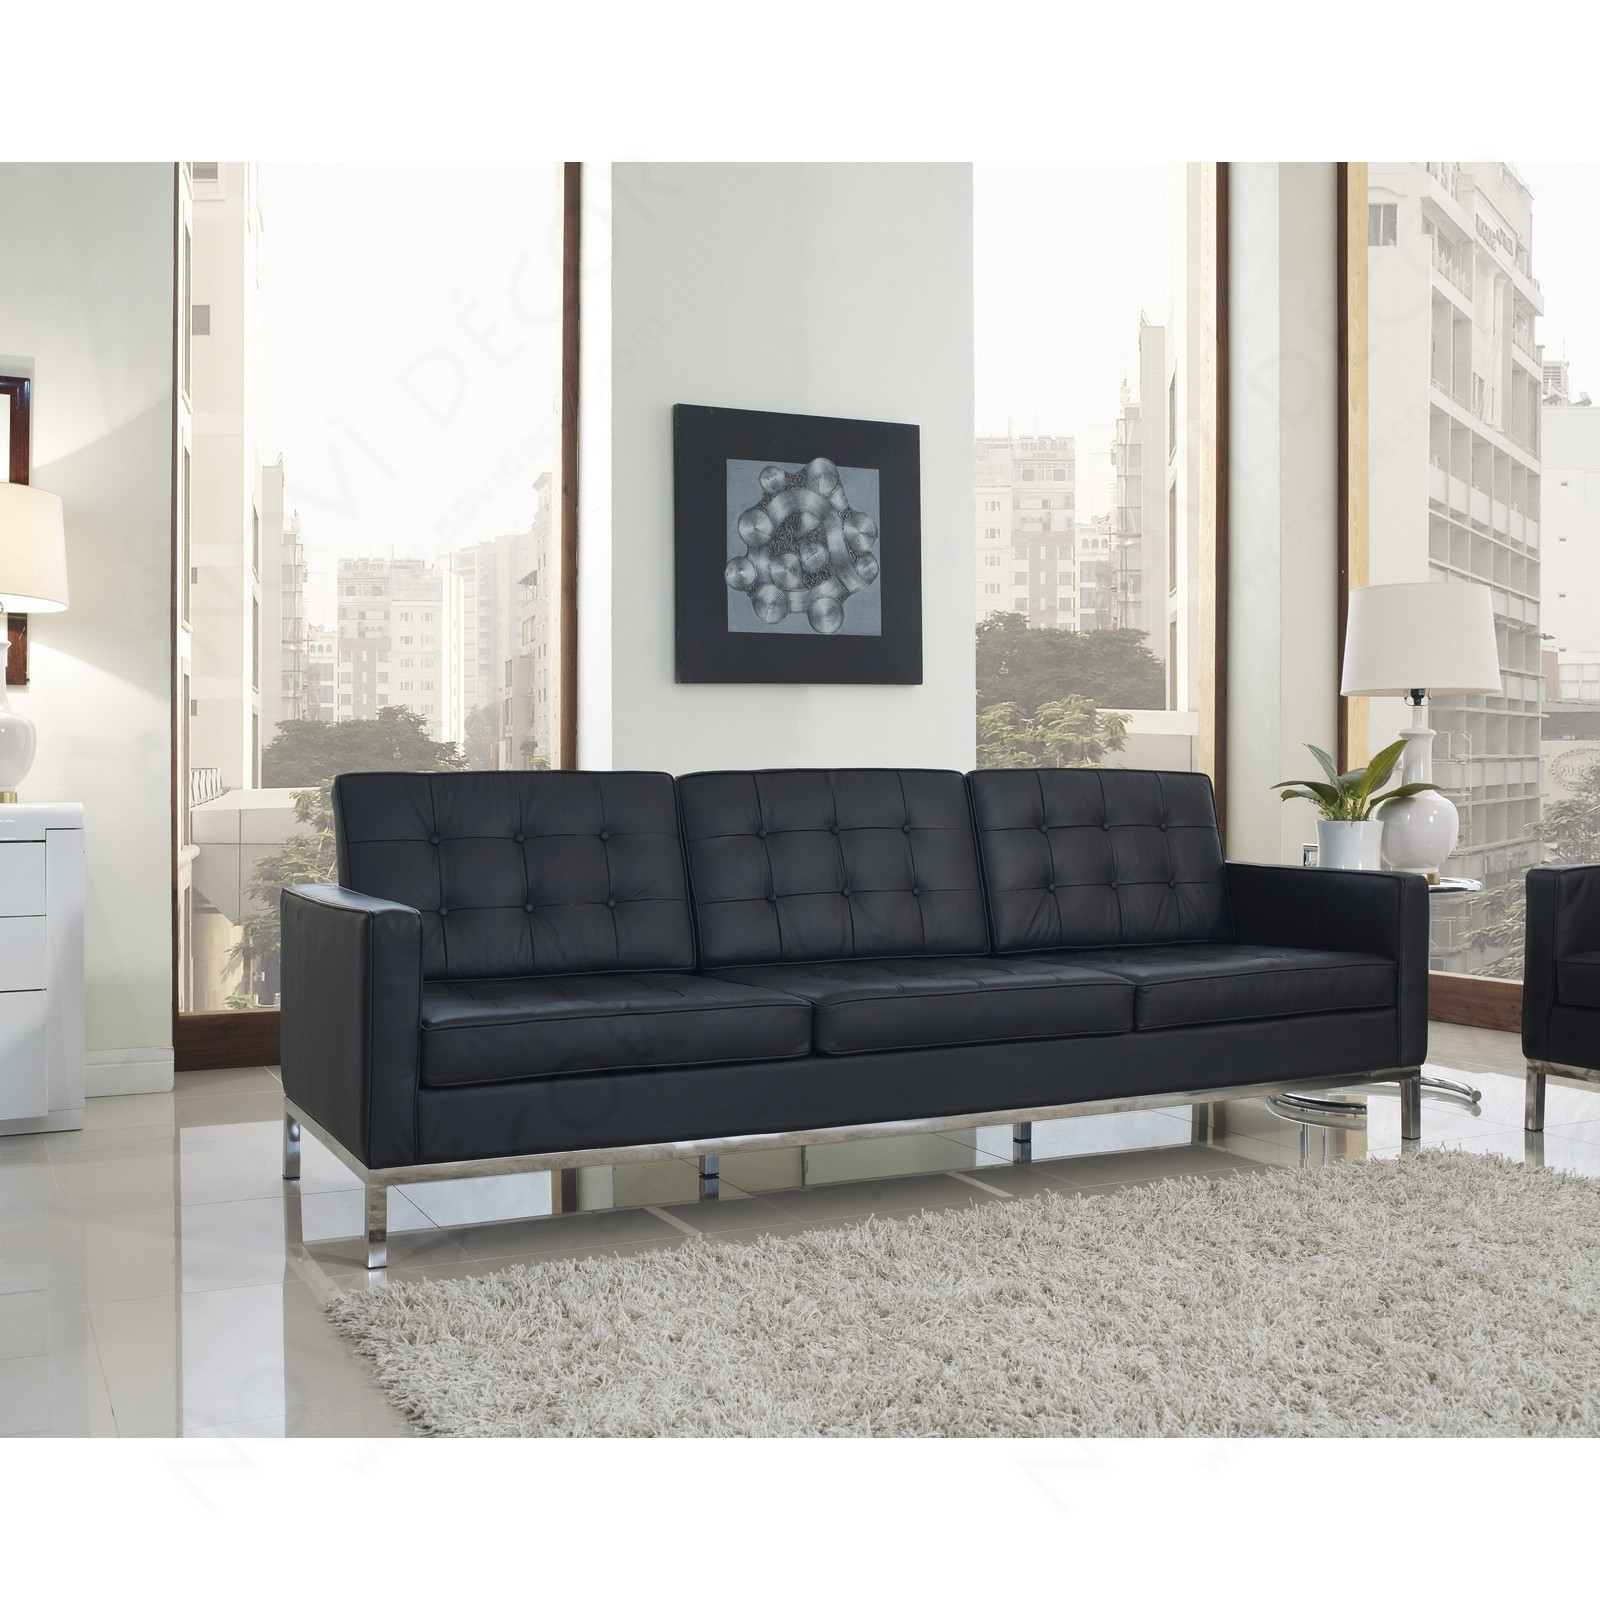 Sofas Center Amazinglorence Knoll Sofa Photo Concept Images With With Regard To Florence Knoll Fabric Sofas (Image 11 of 15)